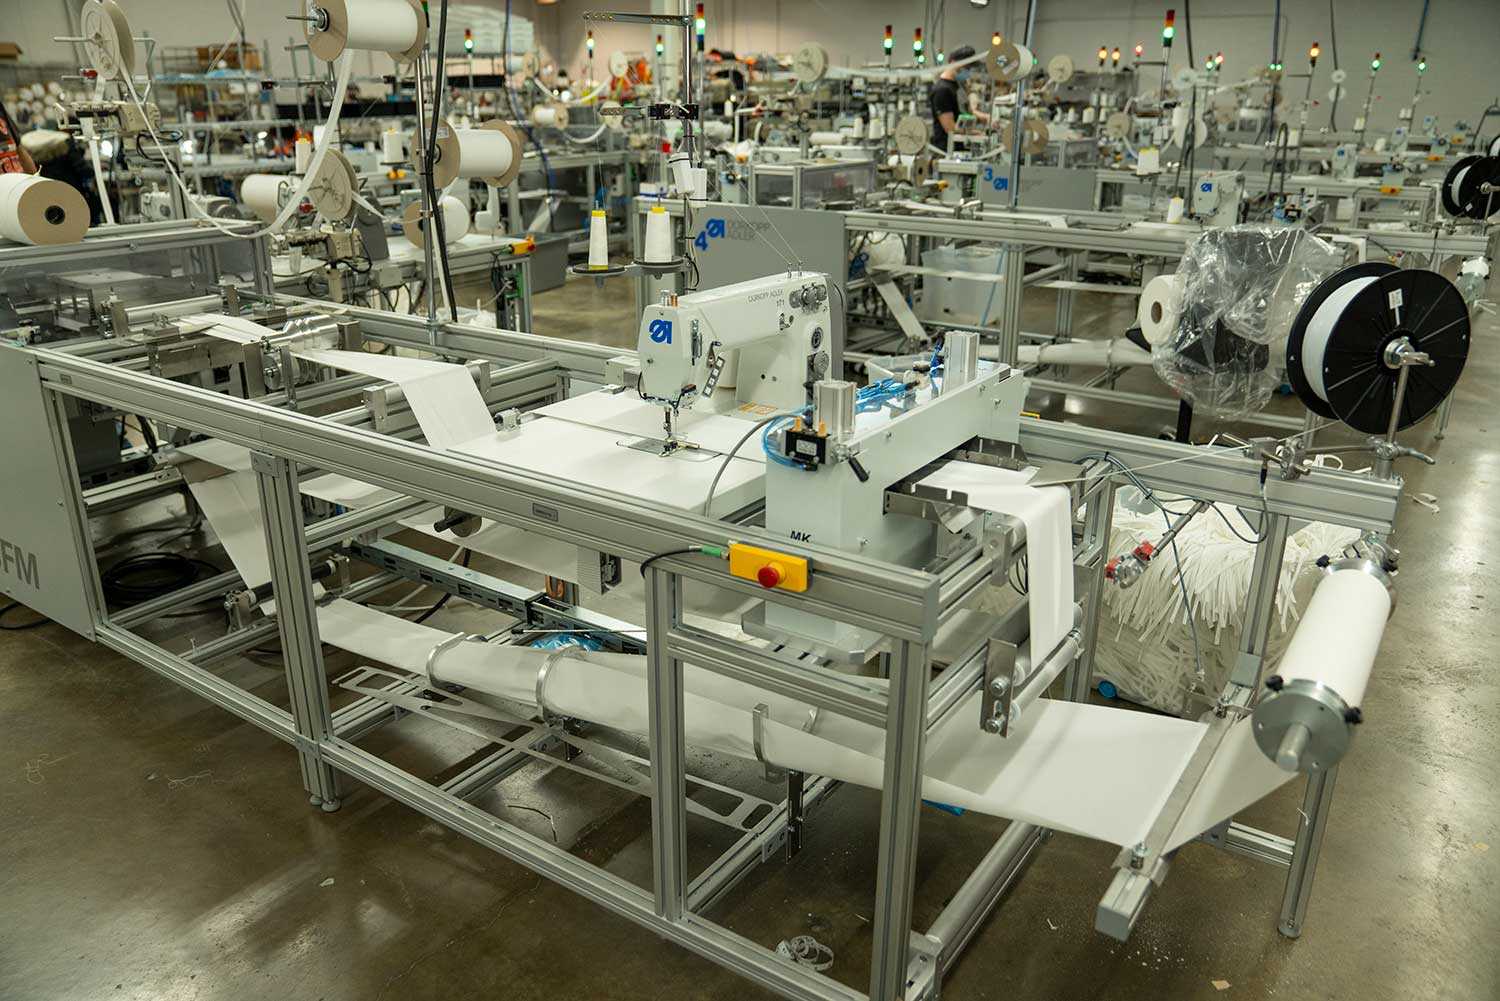 Mask producing sewing machines